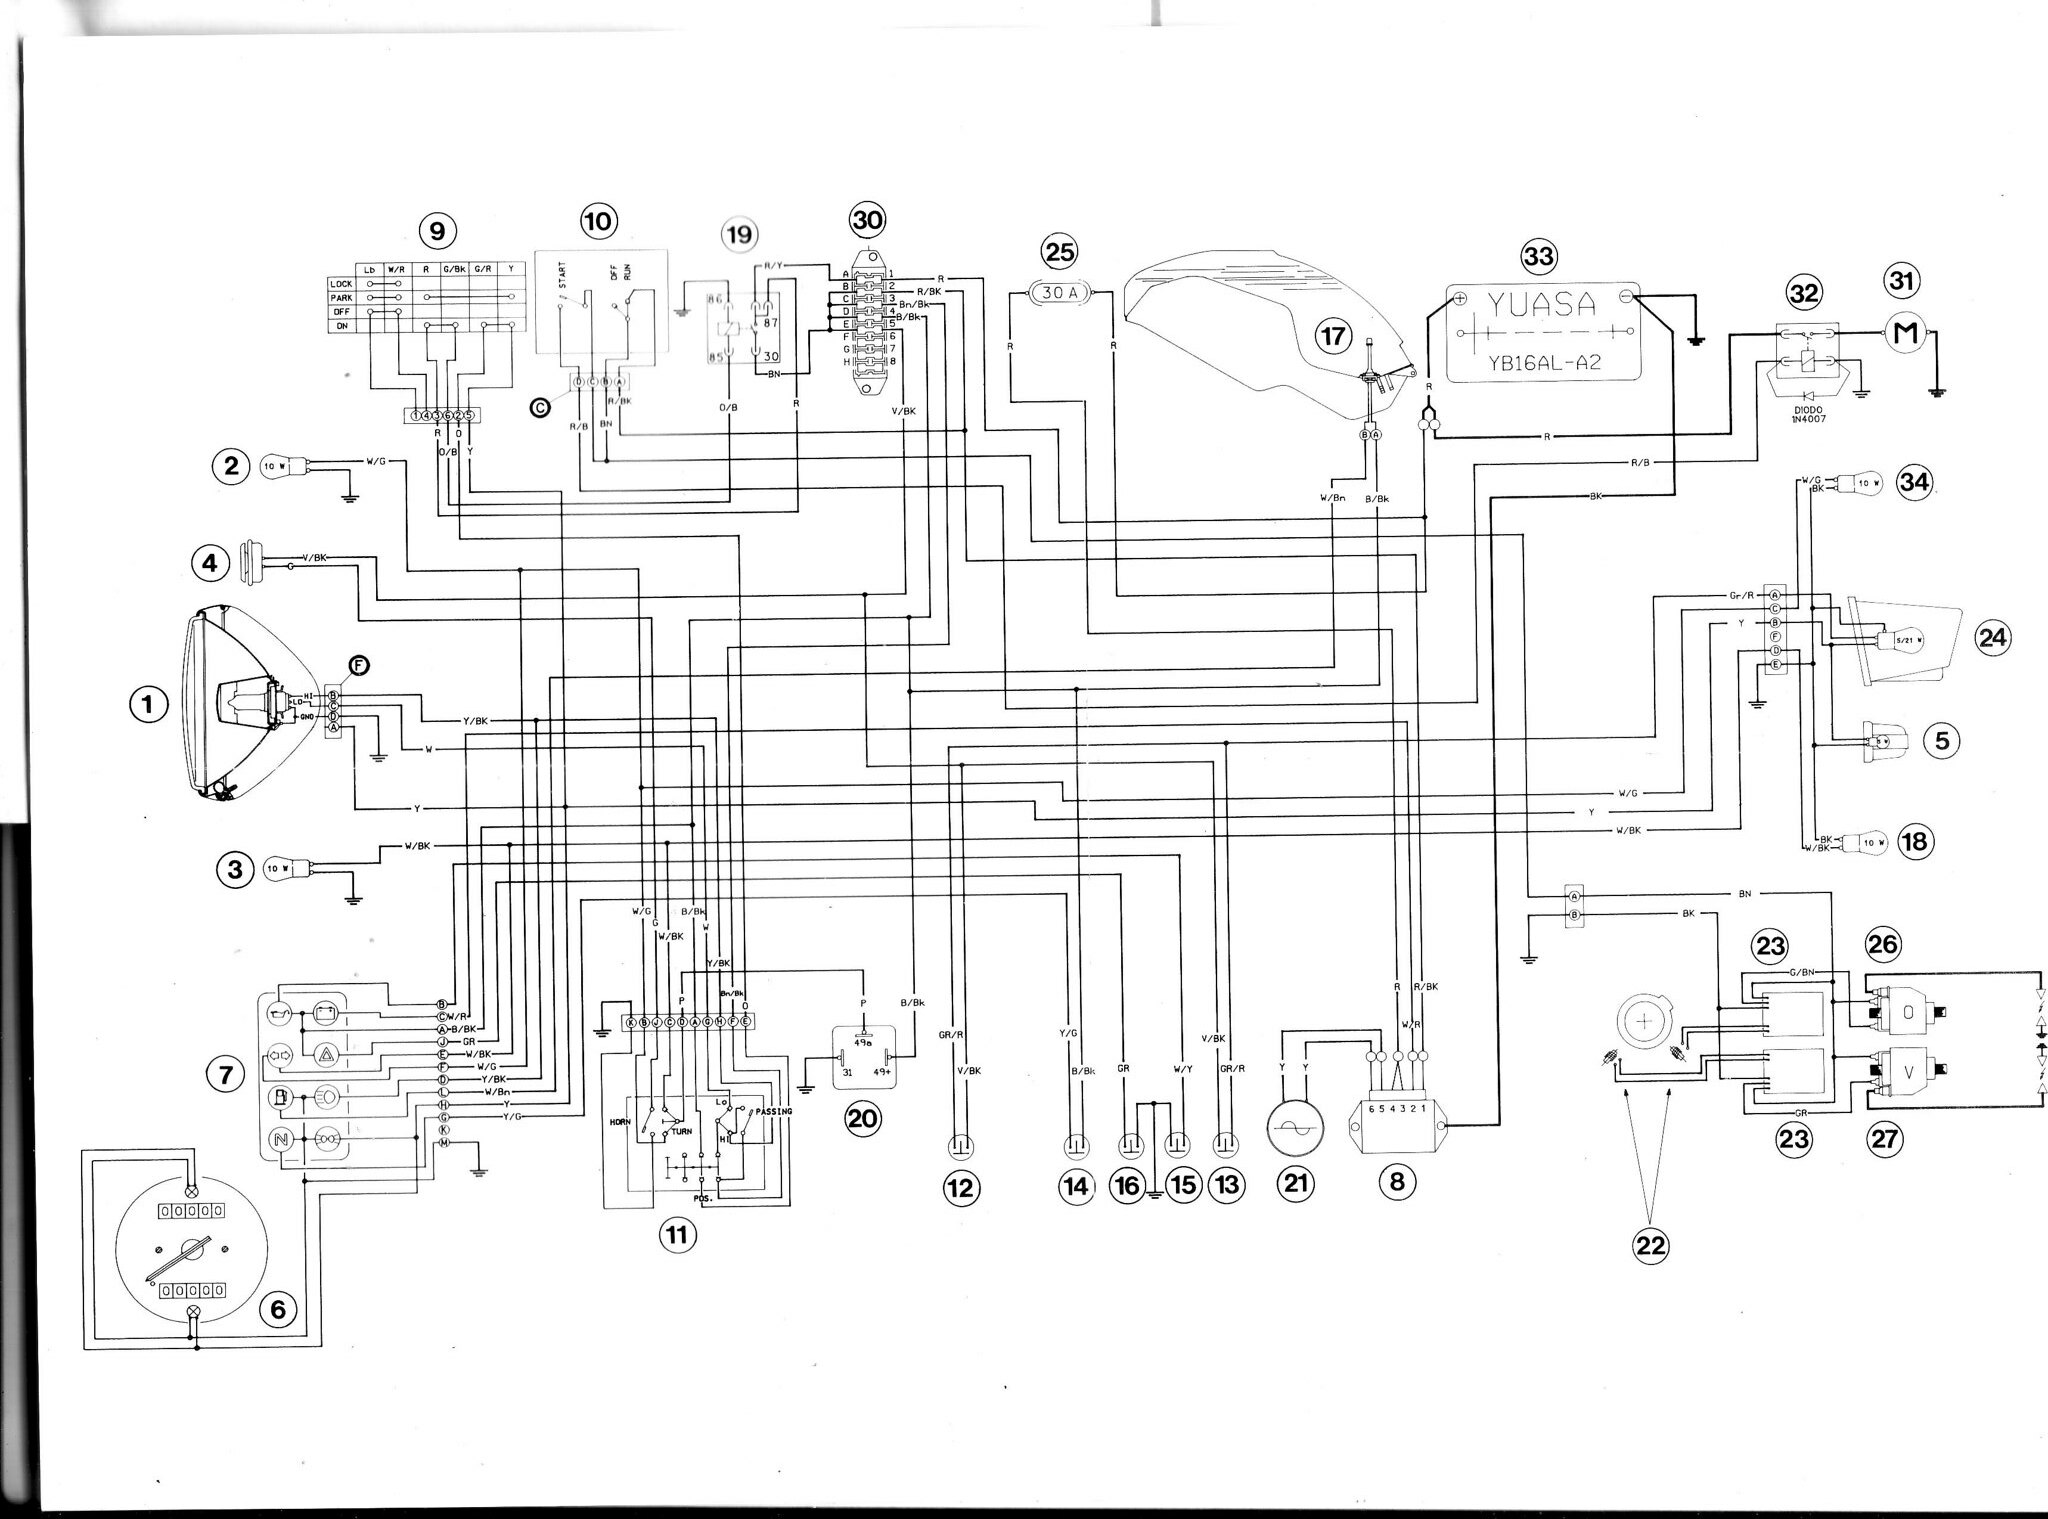 8588506343_911bd96412_k 99 m600 with s2r tank fuel level indicator wiring diagram ducati monster 620 at edmiracle.co